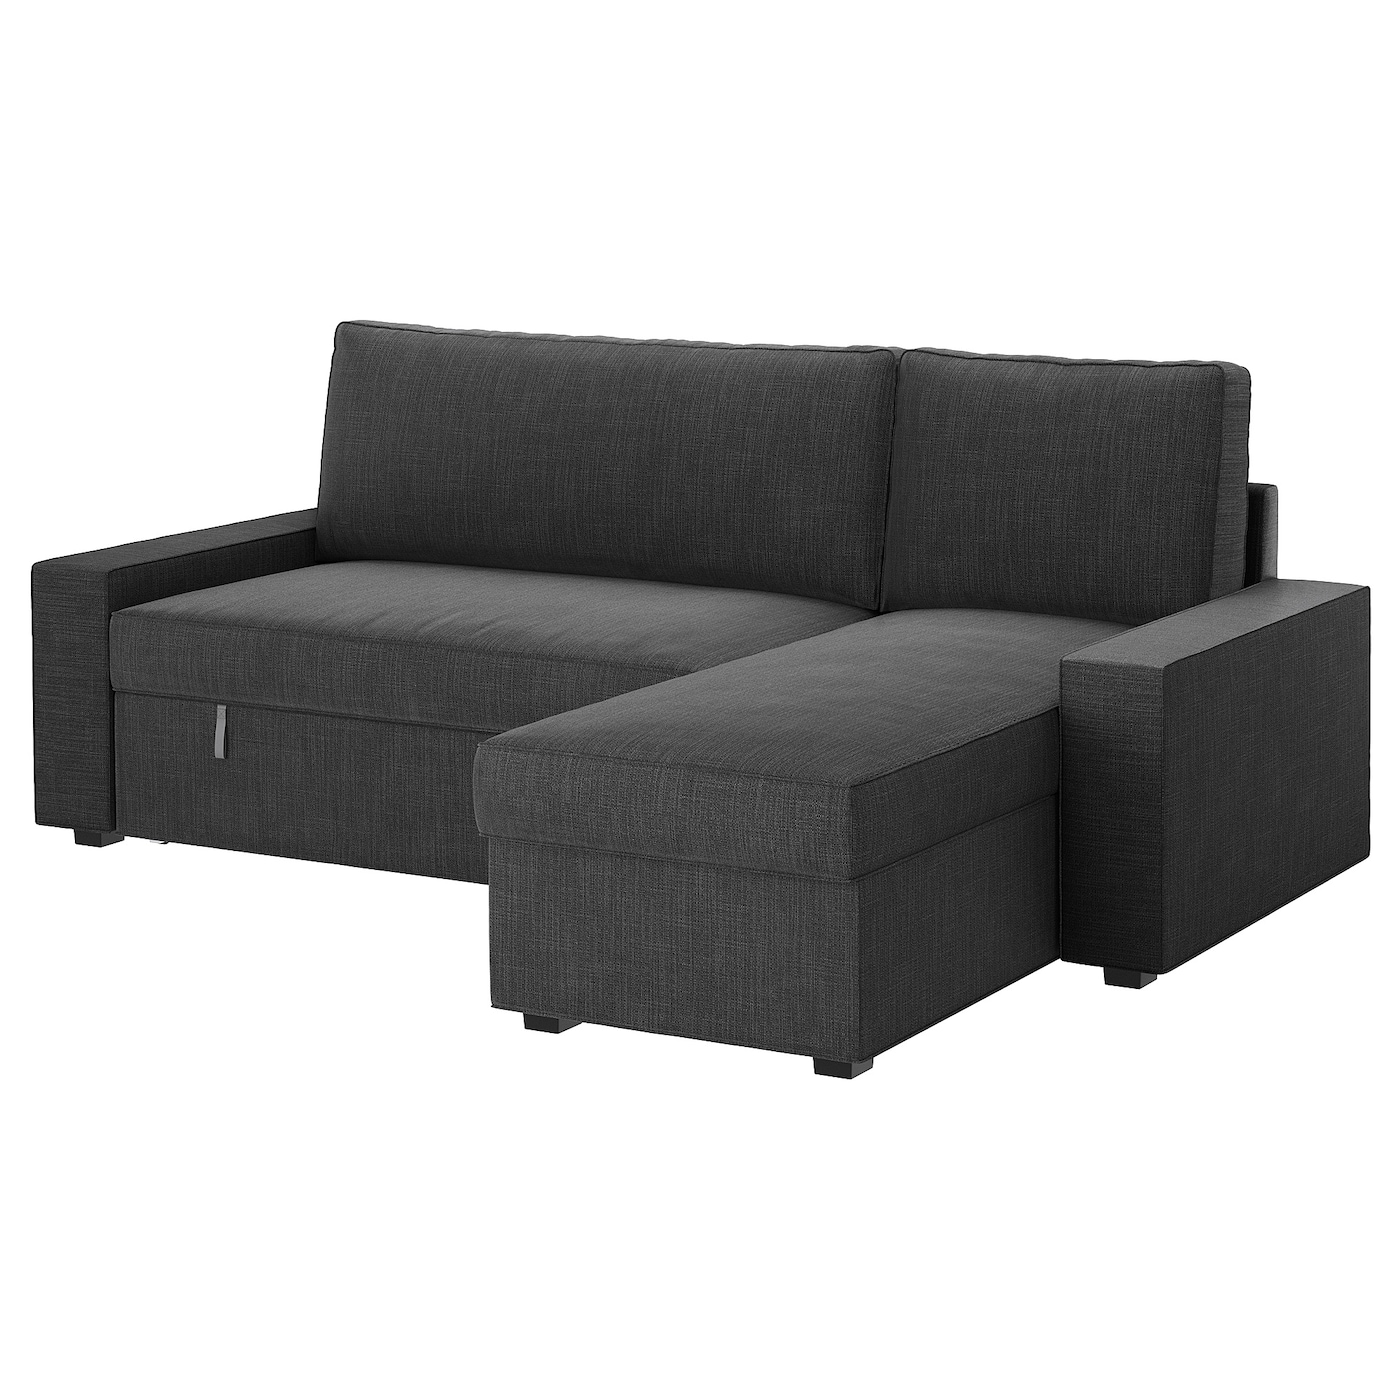 vilasund sofa bed with chaise longue hillared anthracite ikea. Black Bedroom Furniture Sets. Home Design Ideas